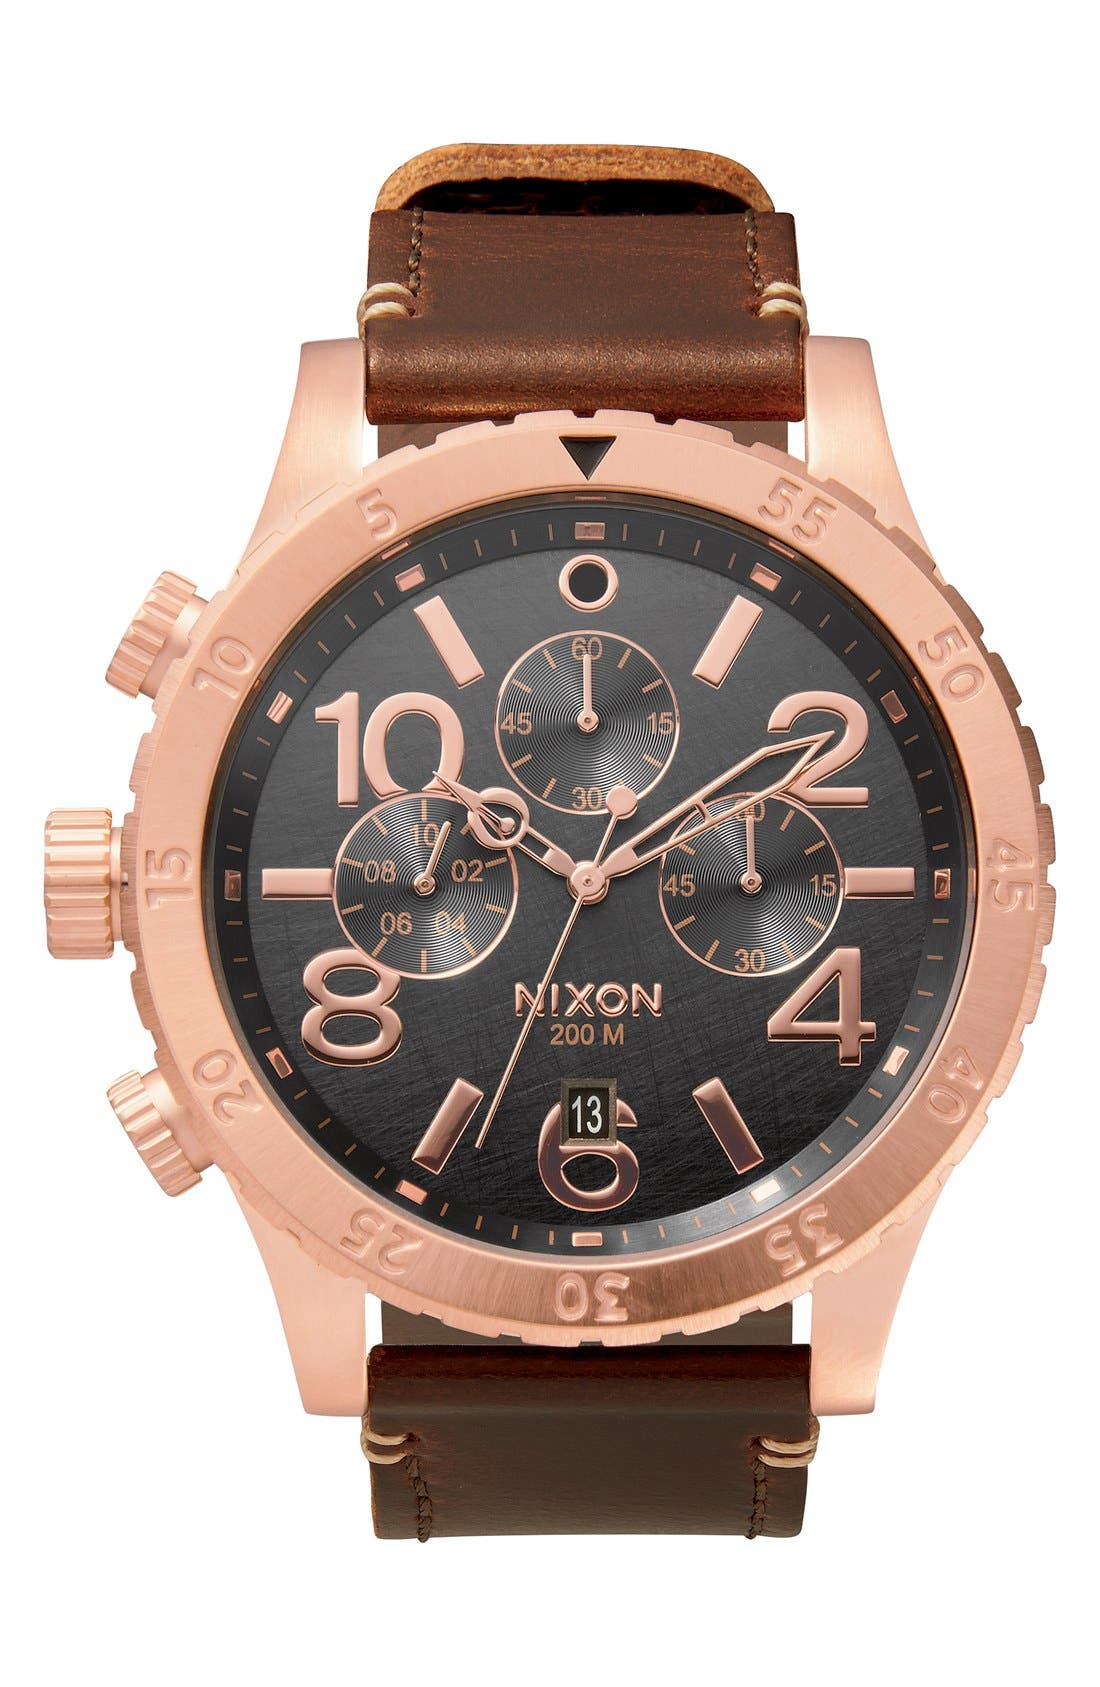 Main Image - Nixon The 48-20 Chronograph Leather Strap Watch, 48mm